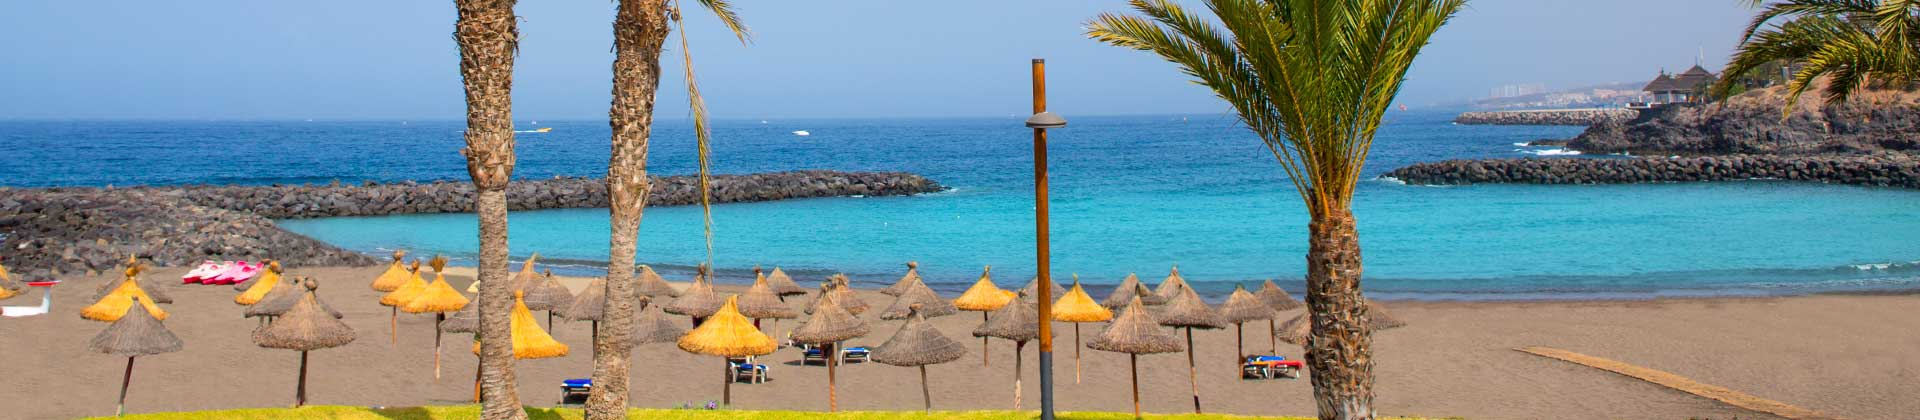 https://www.goodmorningtenerife.com/wp-content/uploads/2014/08/02_slide_beaches_GM_Tenerife1.jpg